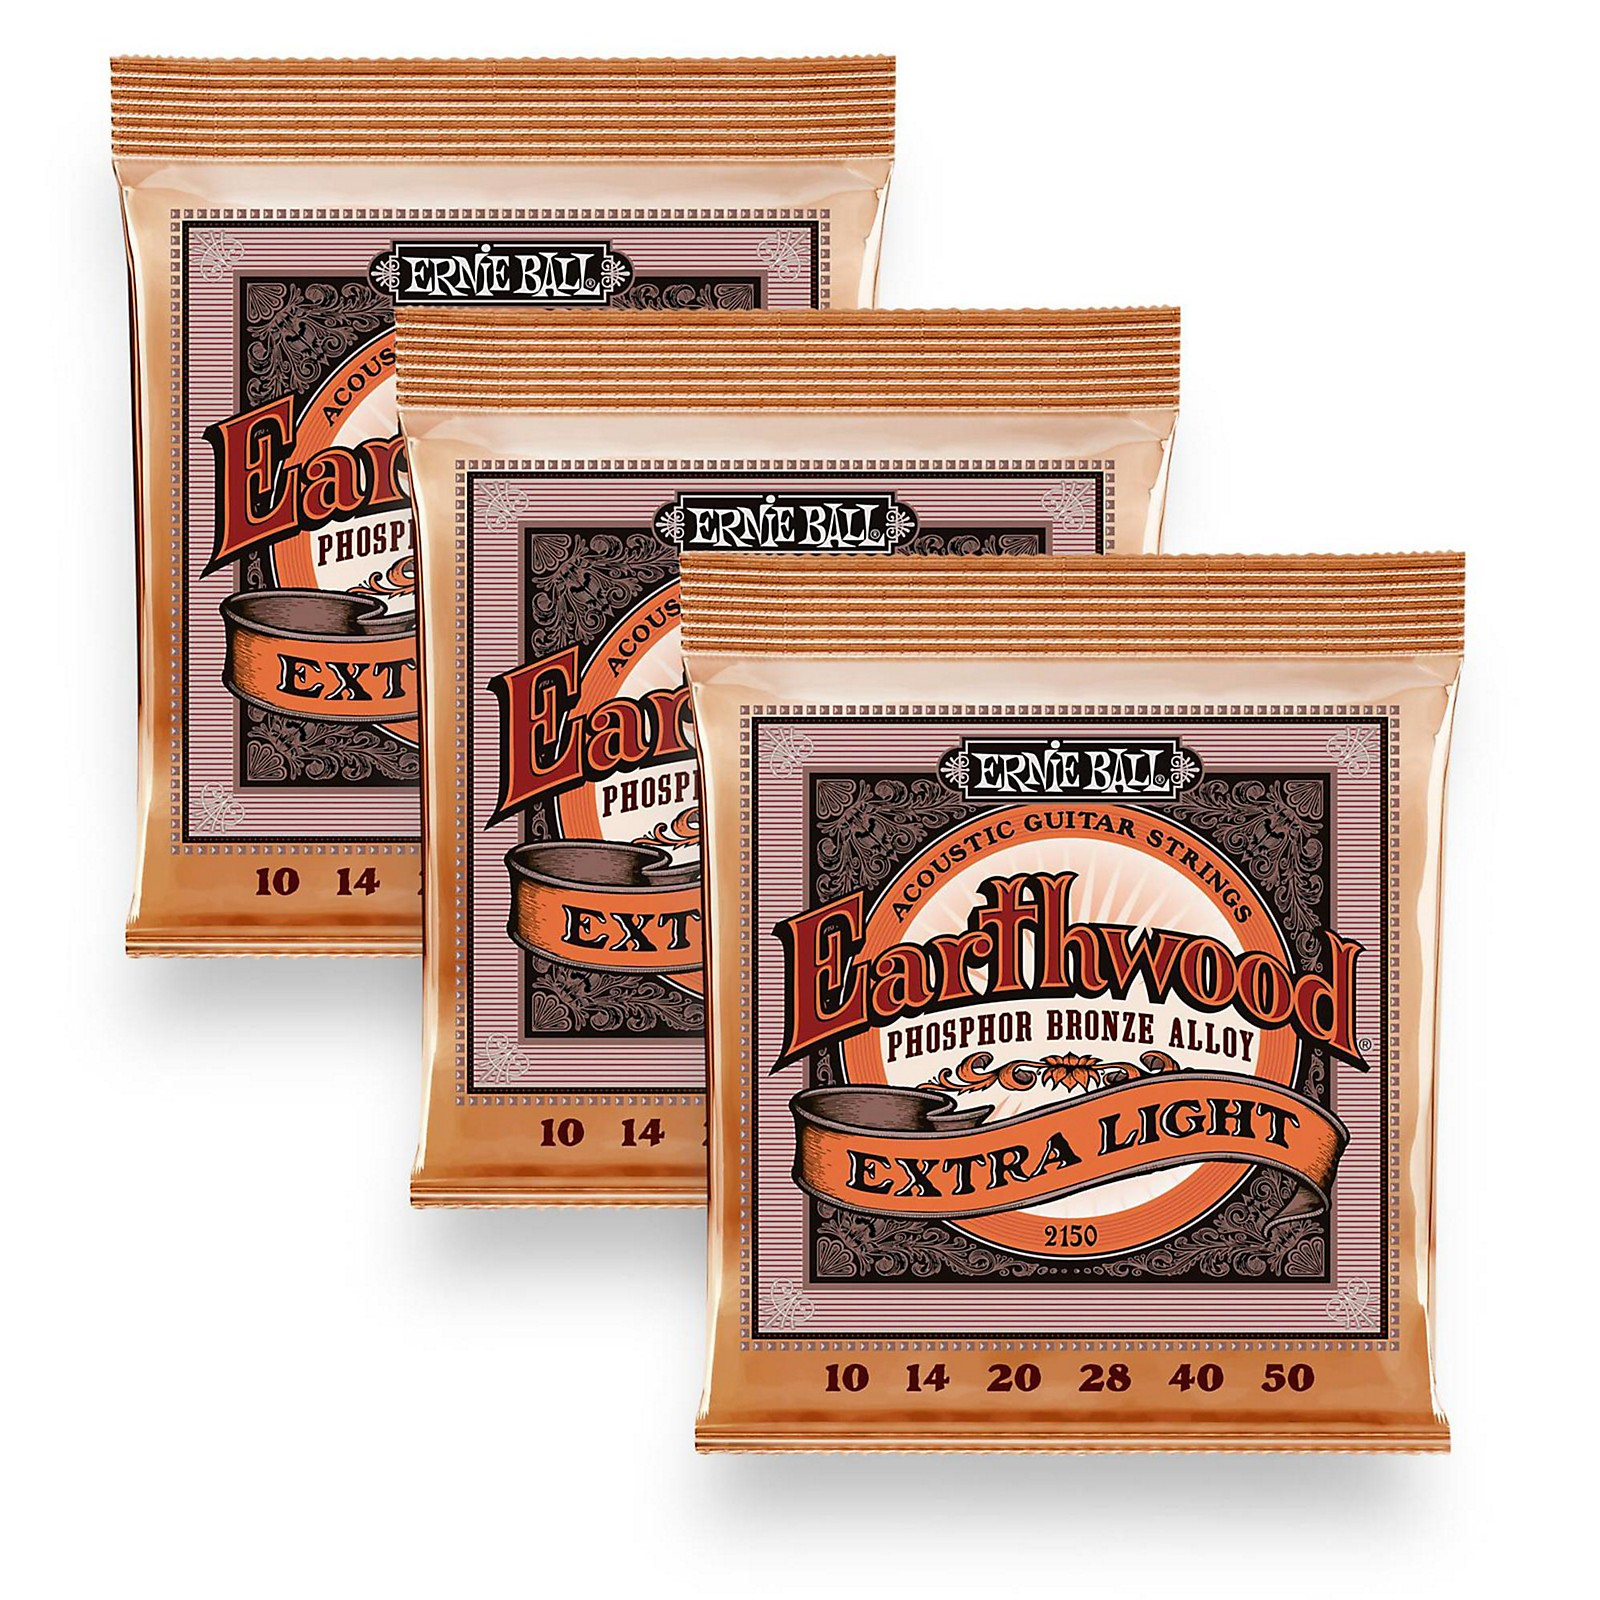 Ernie Ball 2150 Earthwood Phosphor Bronze Extra Light Acoustic Guitar Strings 3-Pack